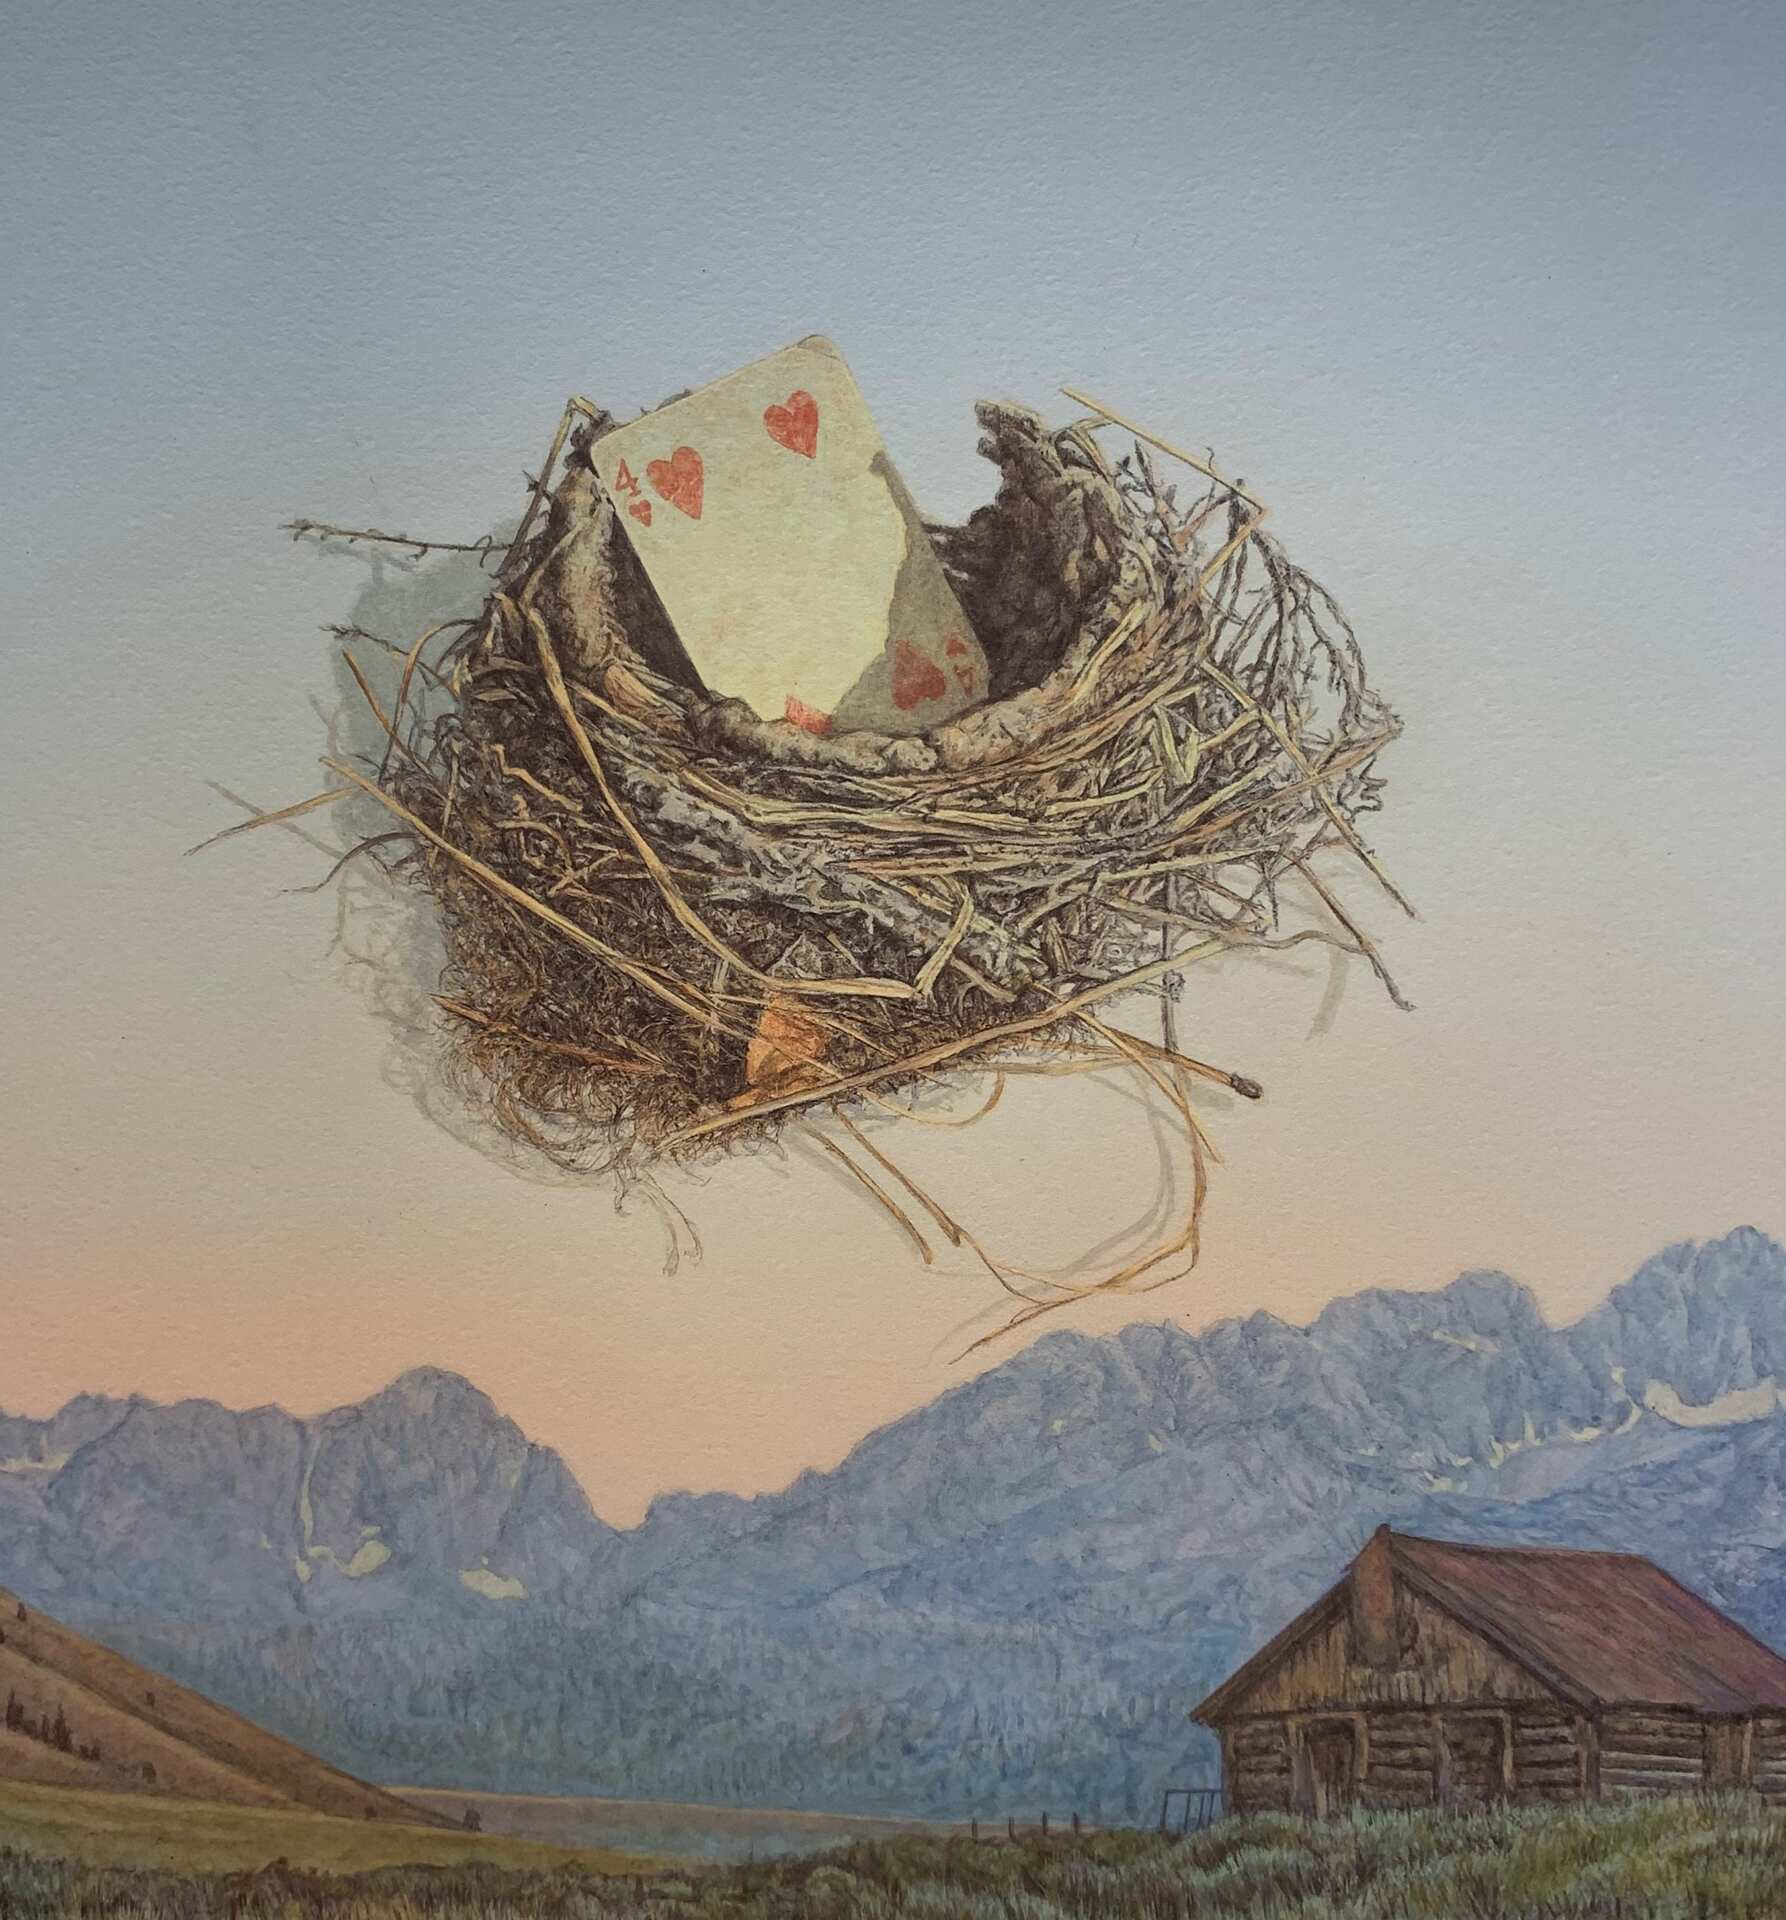 """""""Home is Where the Heart is"""" by Randy Van Dyck, 12x12"""""""